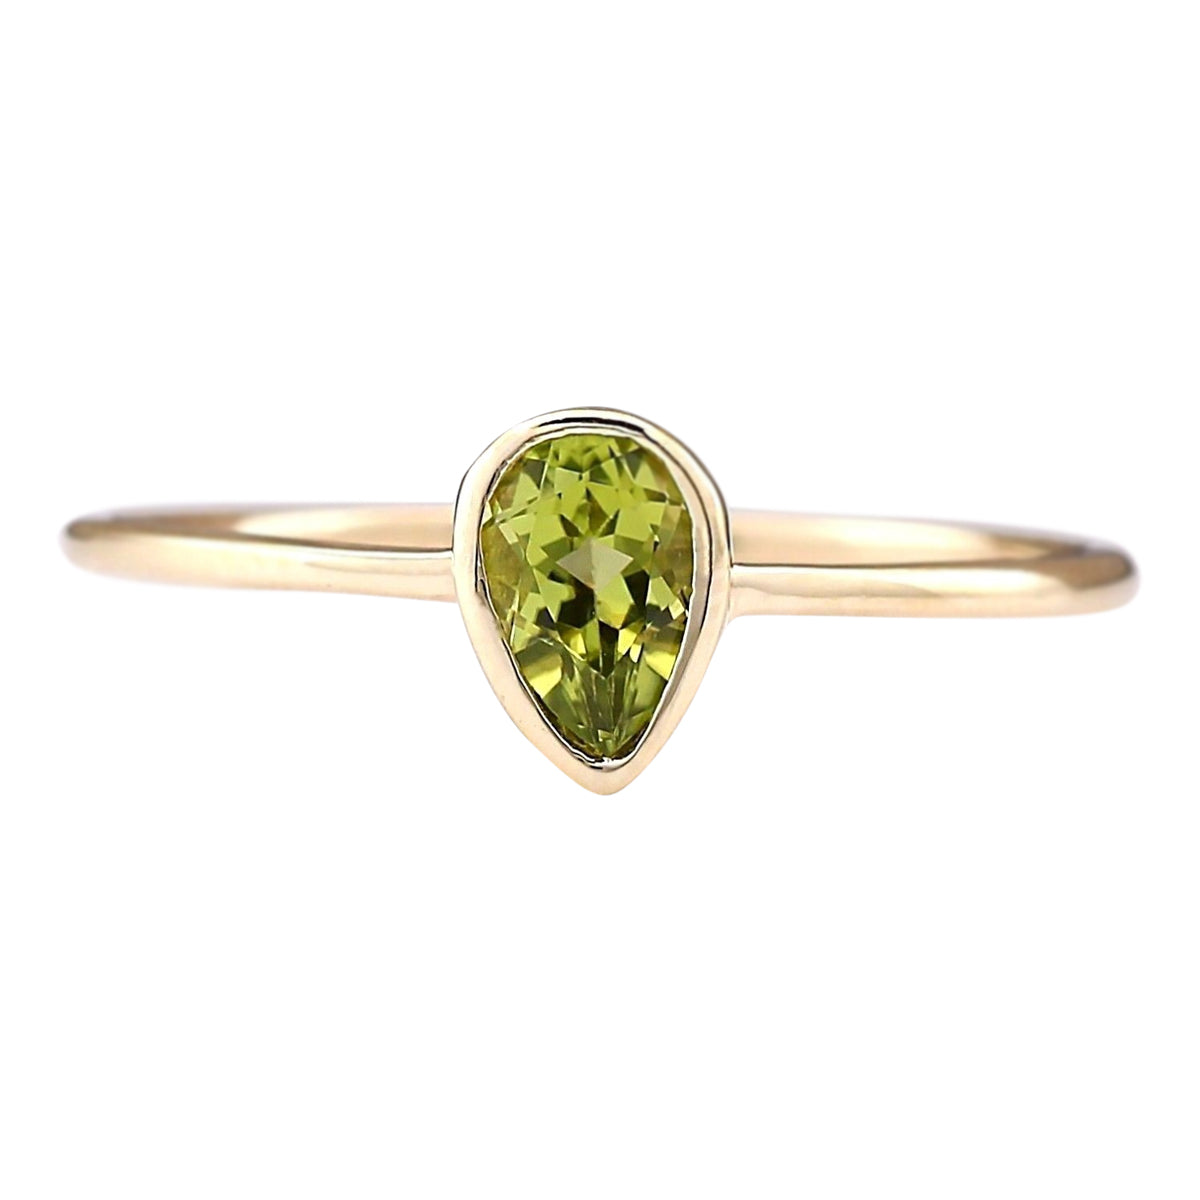 0.50 Carat Natural Peridot 14K Yellow Gold Ring